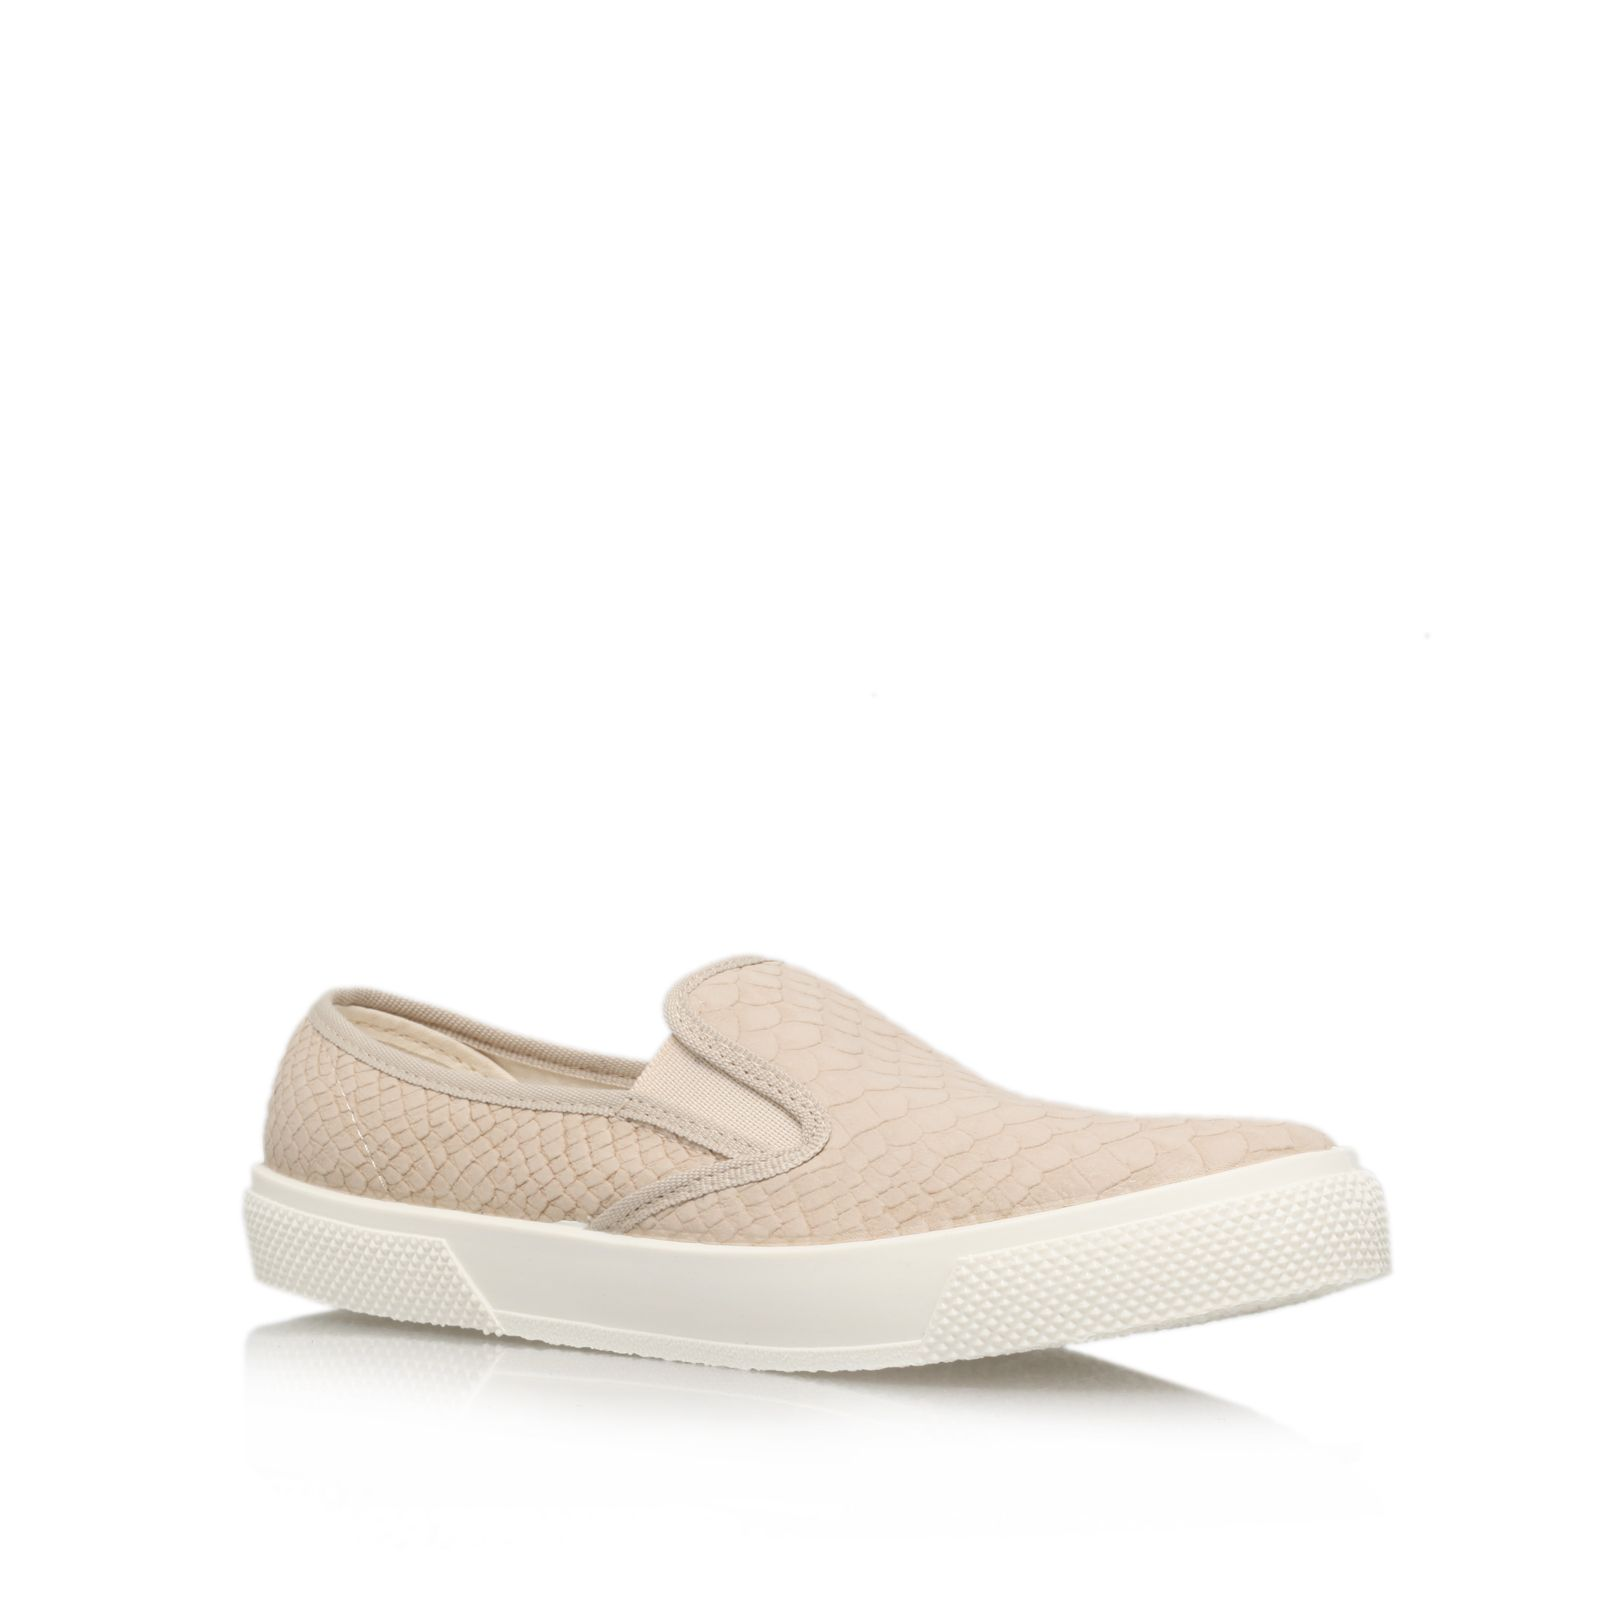 Leo slip on loafer